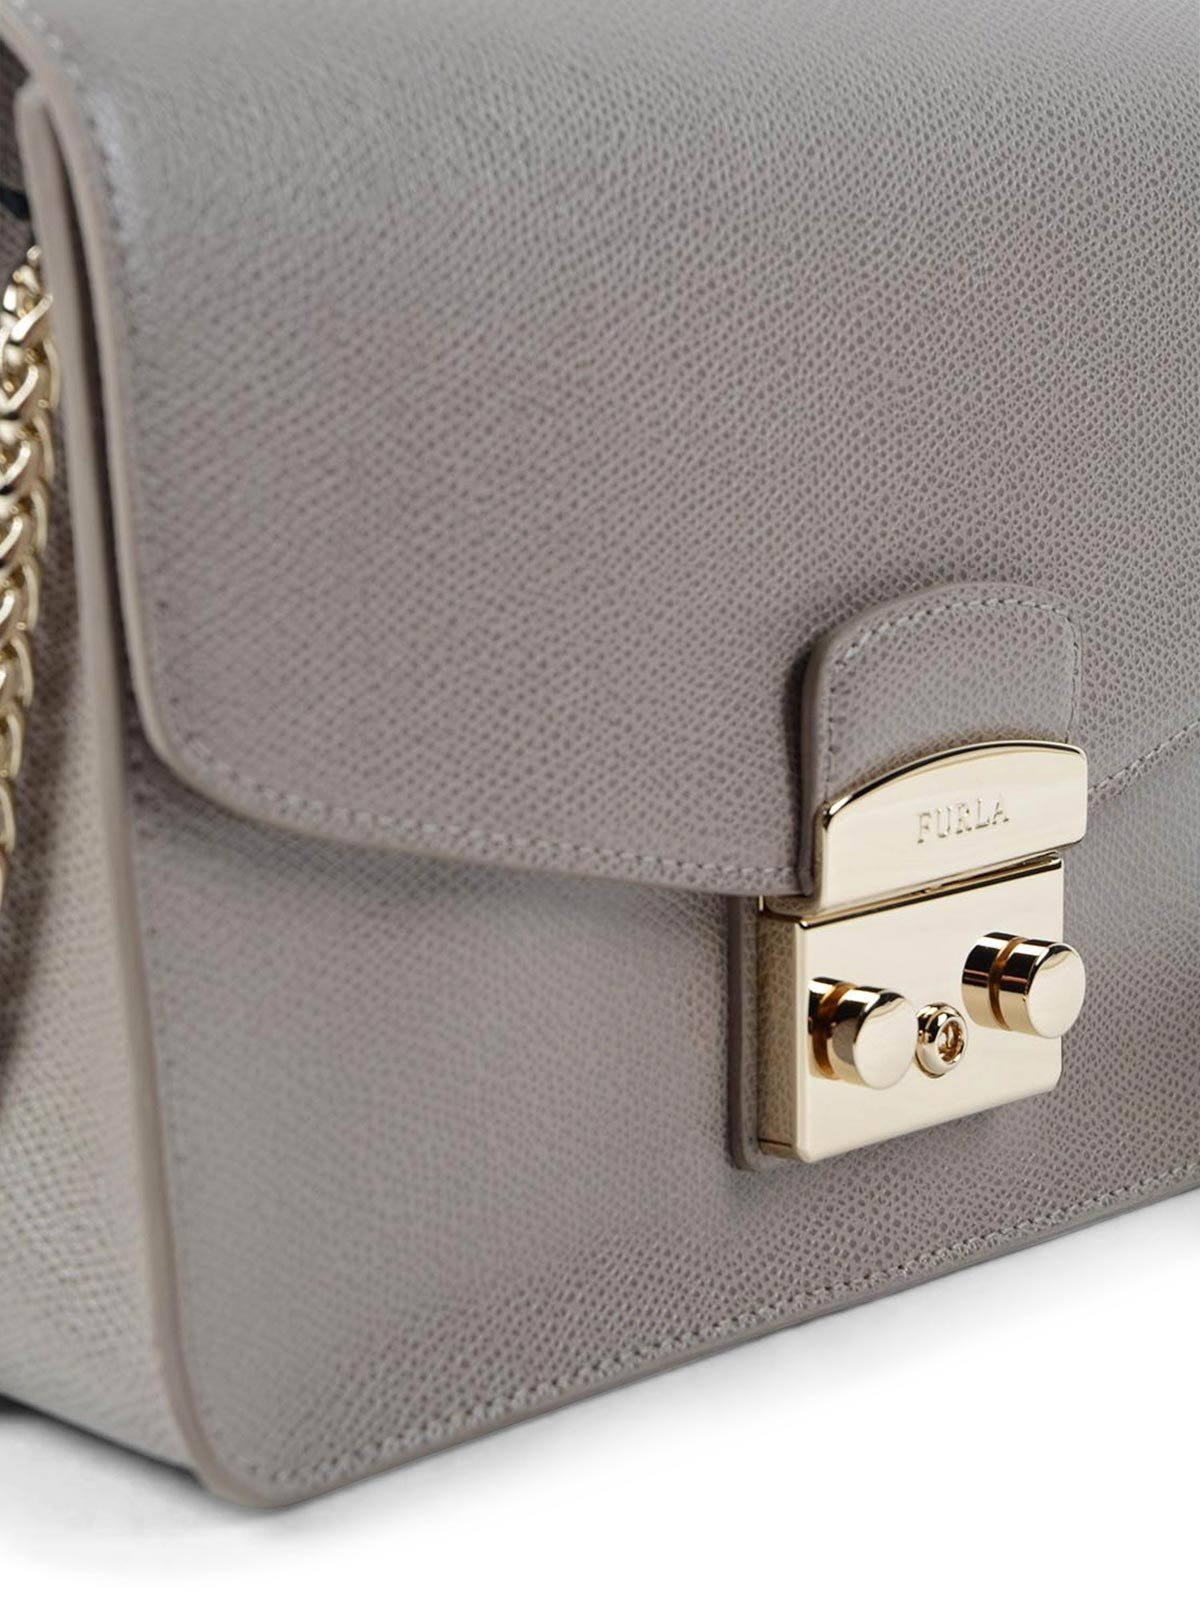 Furla Metropolis S leather shoulder bag m292MRijI